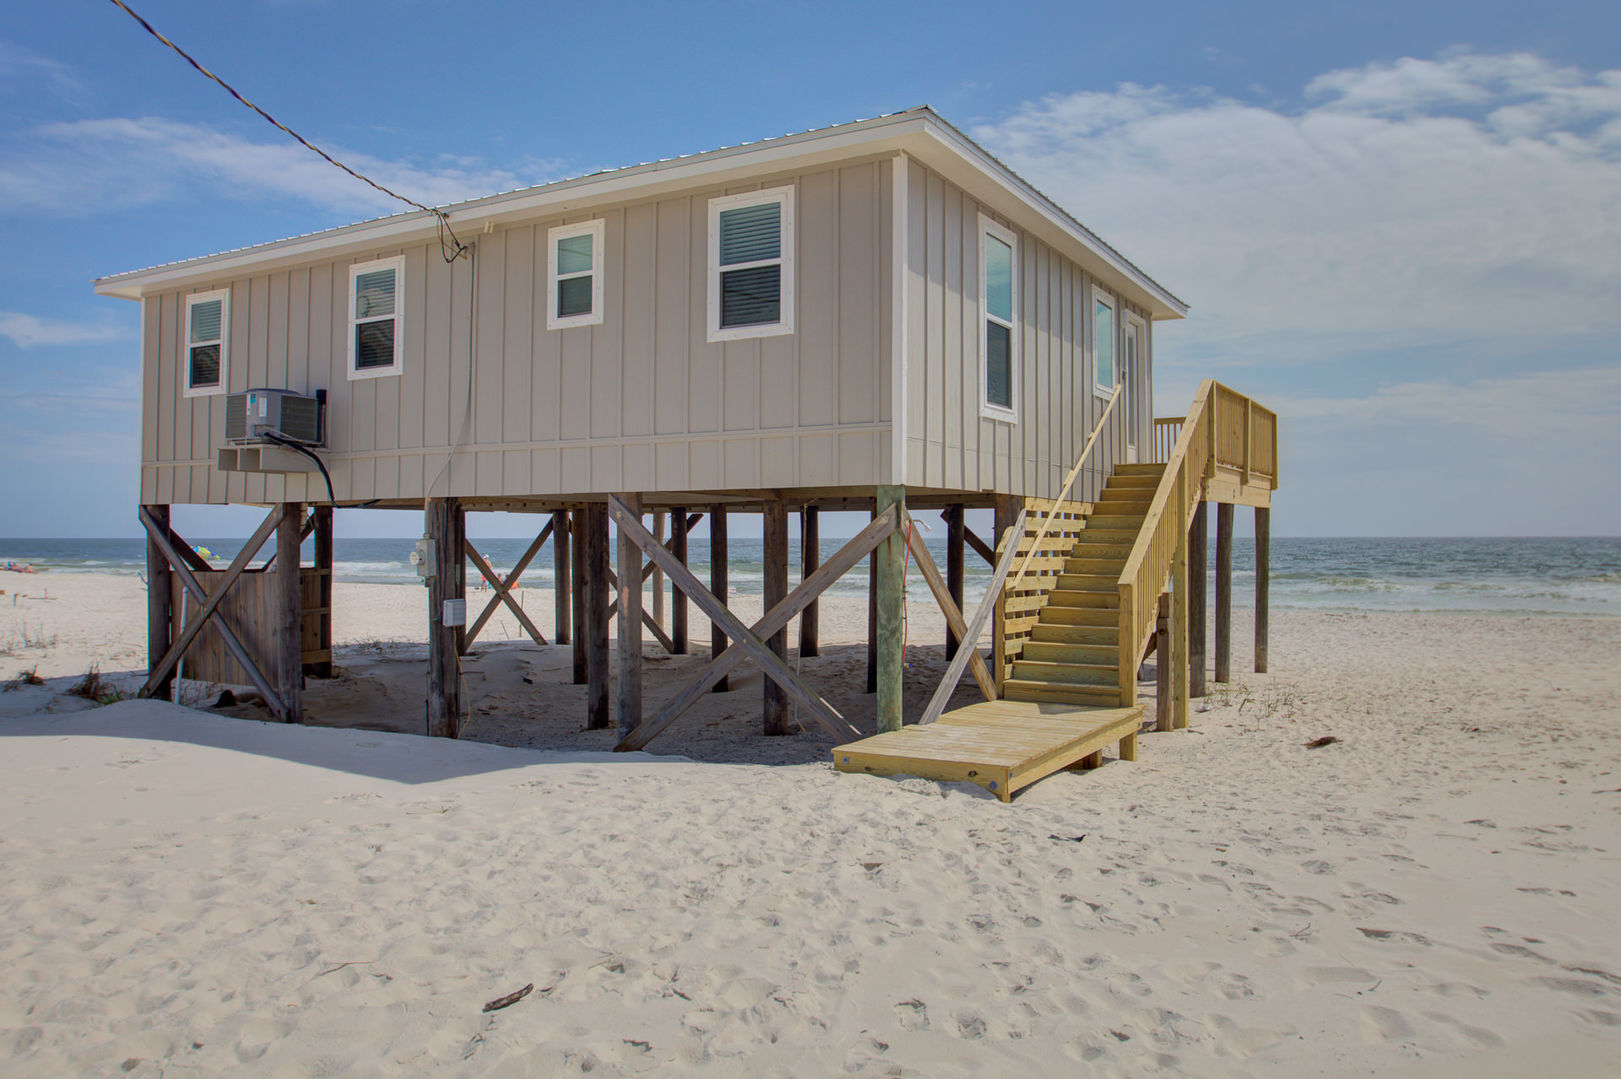 5 Bedroom Beach House Gulf Shores